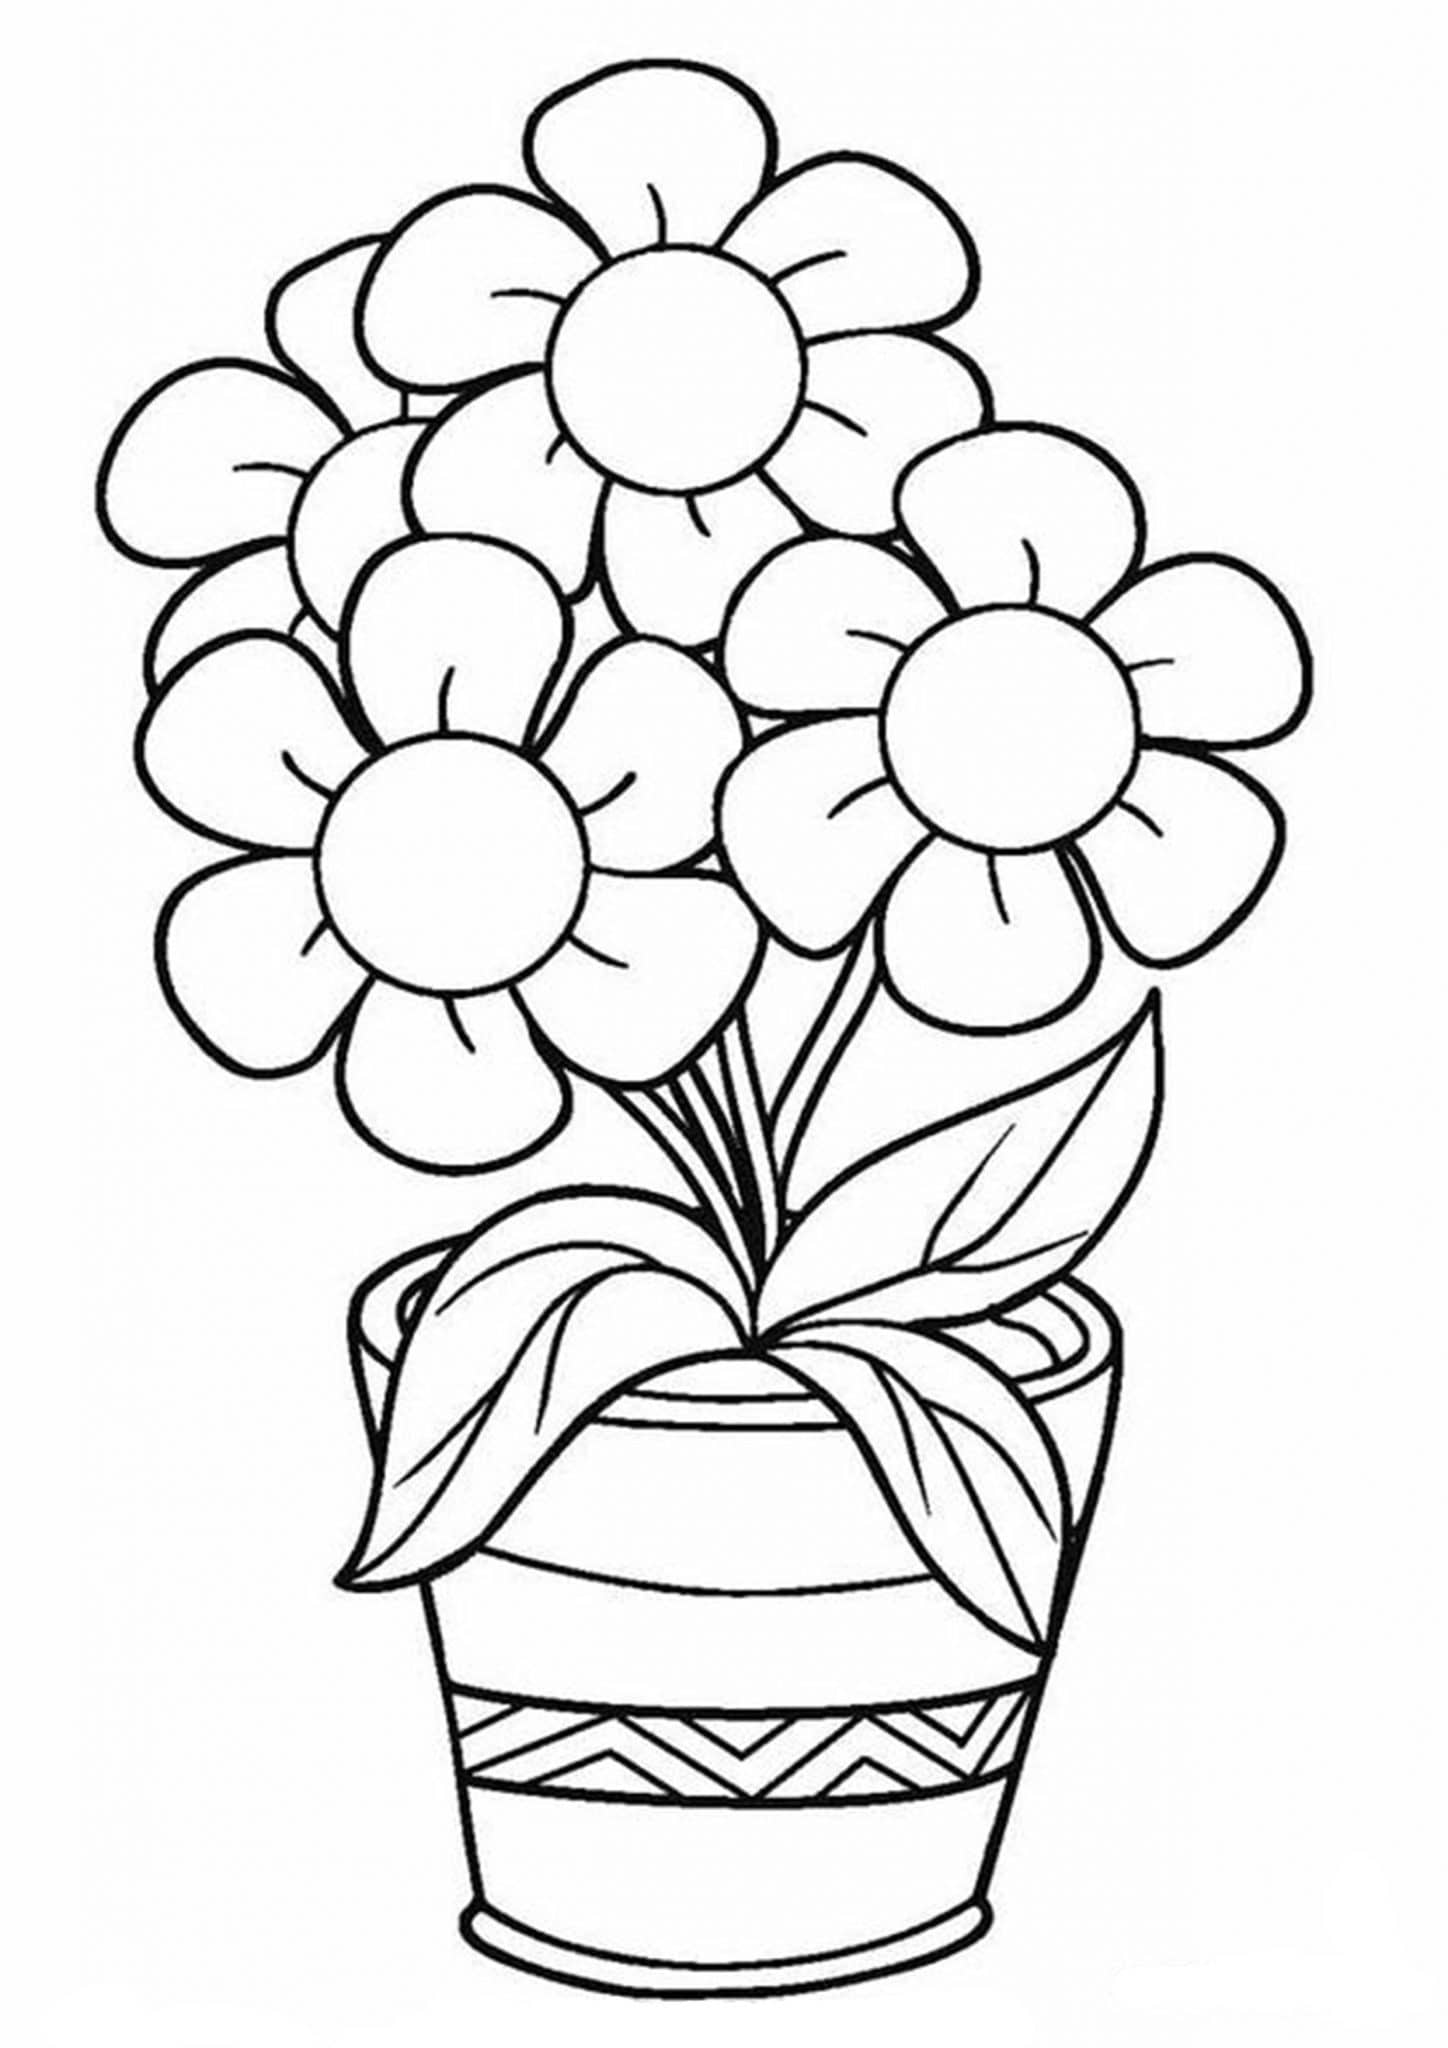 free flower coloring sheets coloring town sheets coloring flower free